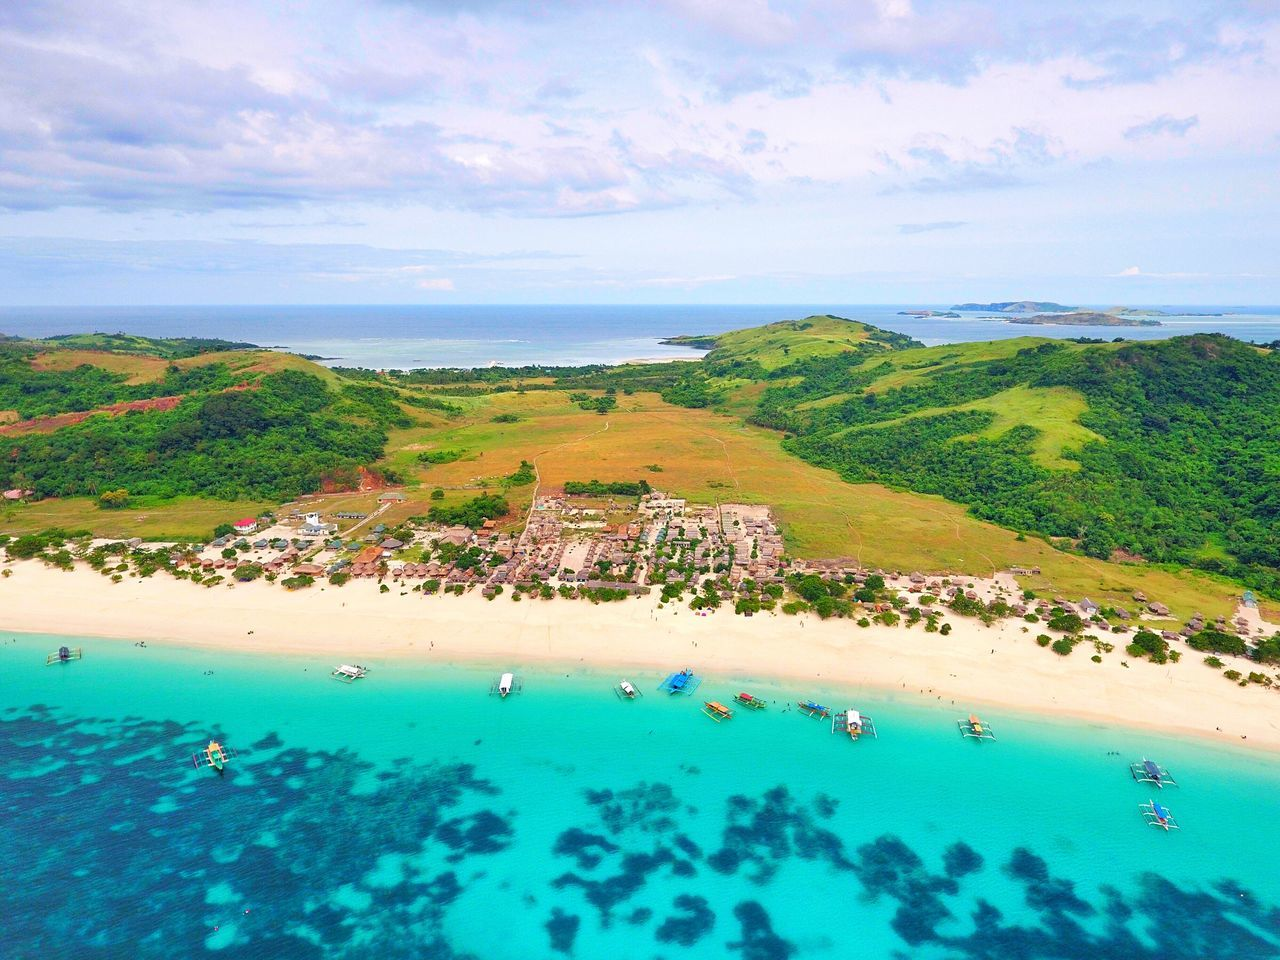 Water Sea Beach Tranquil Scene Horizon Over Water Vacations Scenics Tranquility Sky High Angle View Aerial View Travel Destinations Blue Coastline Seascape Trip Drone  Eyeem Philippines Whitesand Shore Swimming Ocean Island Traveling